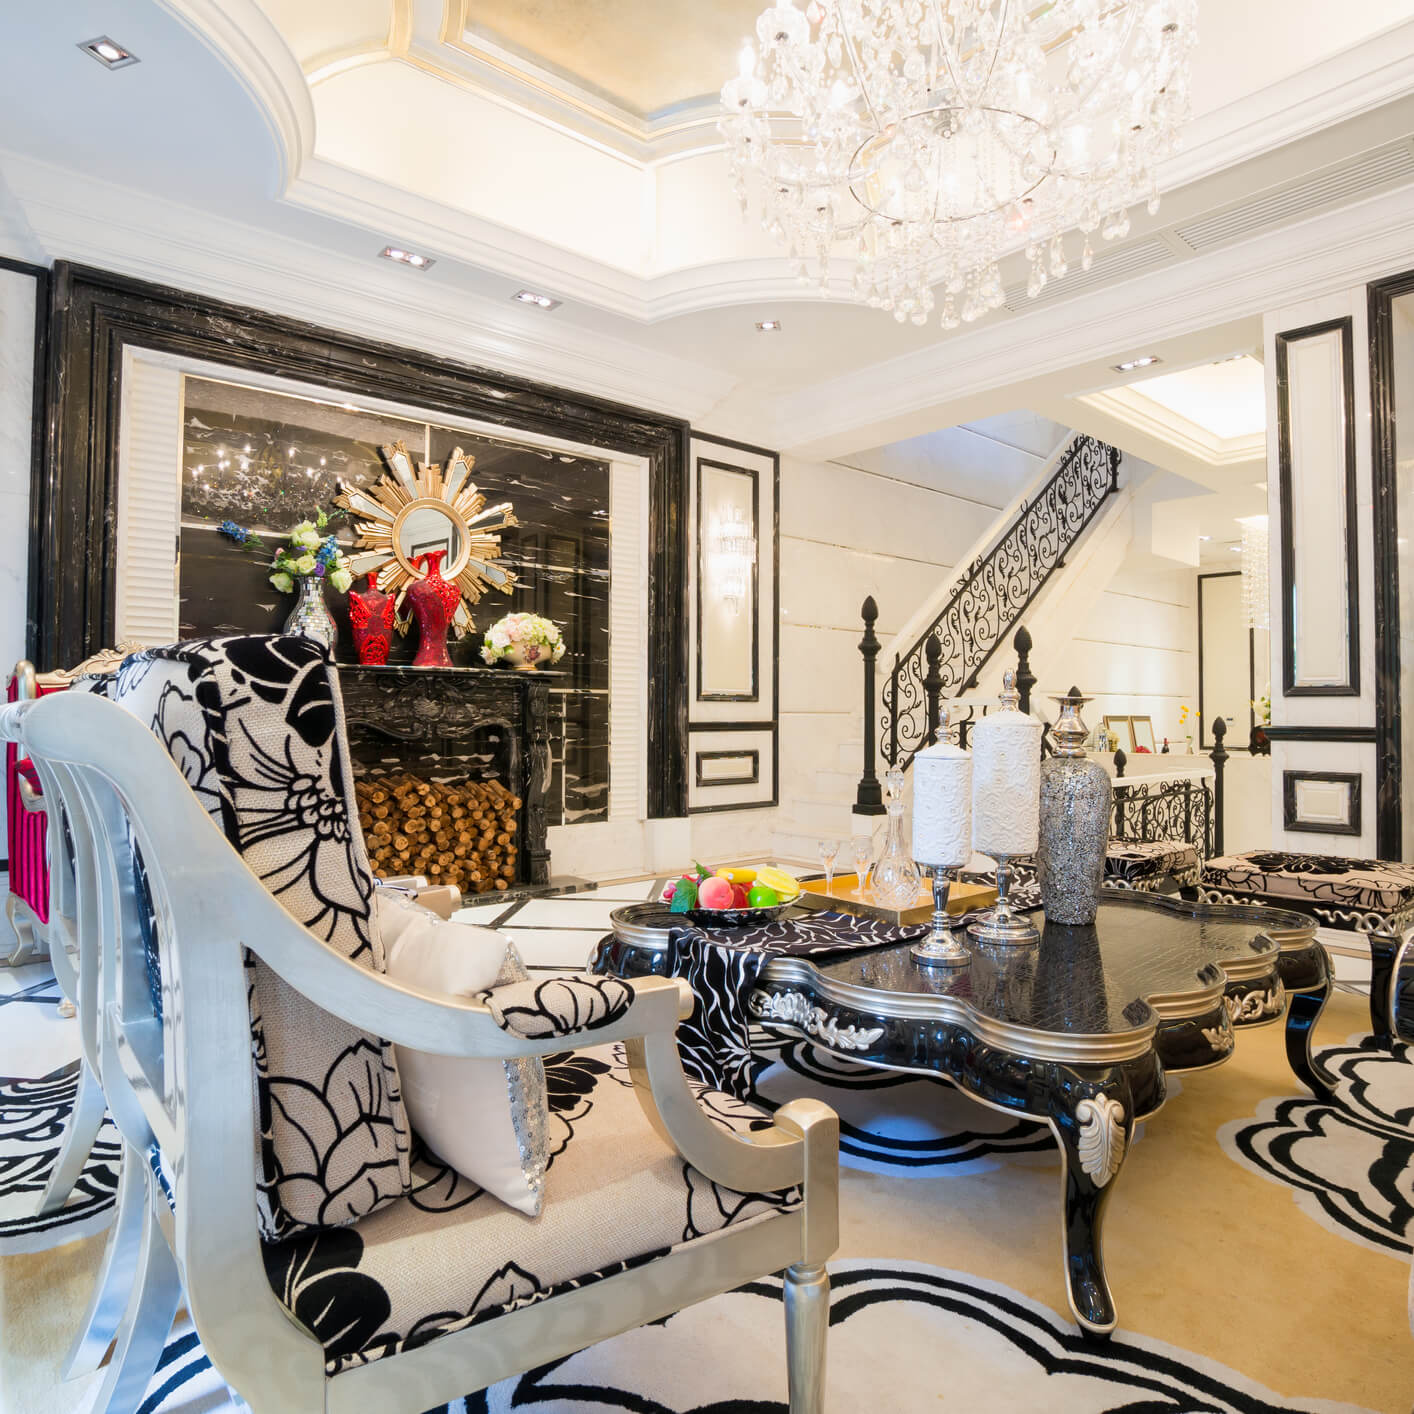 Zebra living room design with black and white patterns on the walls, staircase, floor, furniture and coffee table.